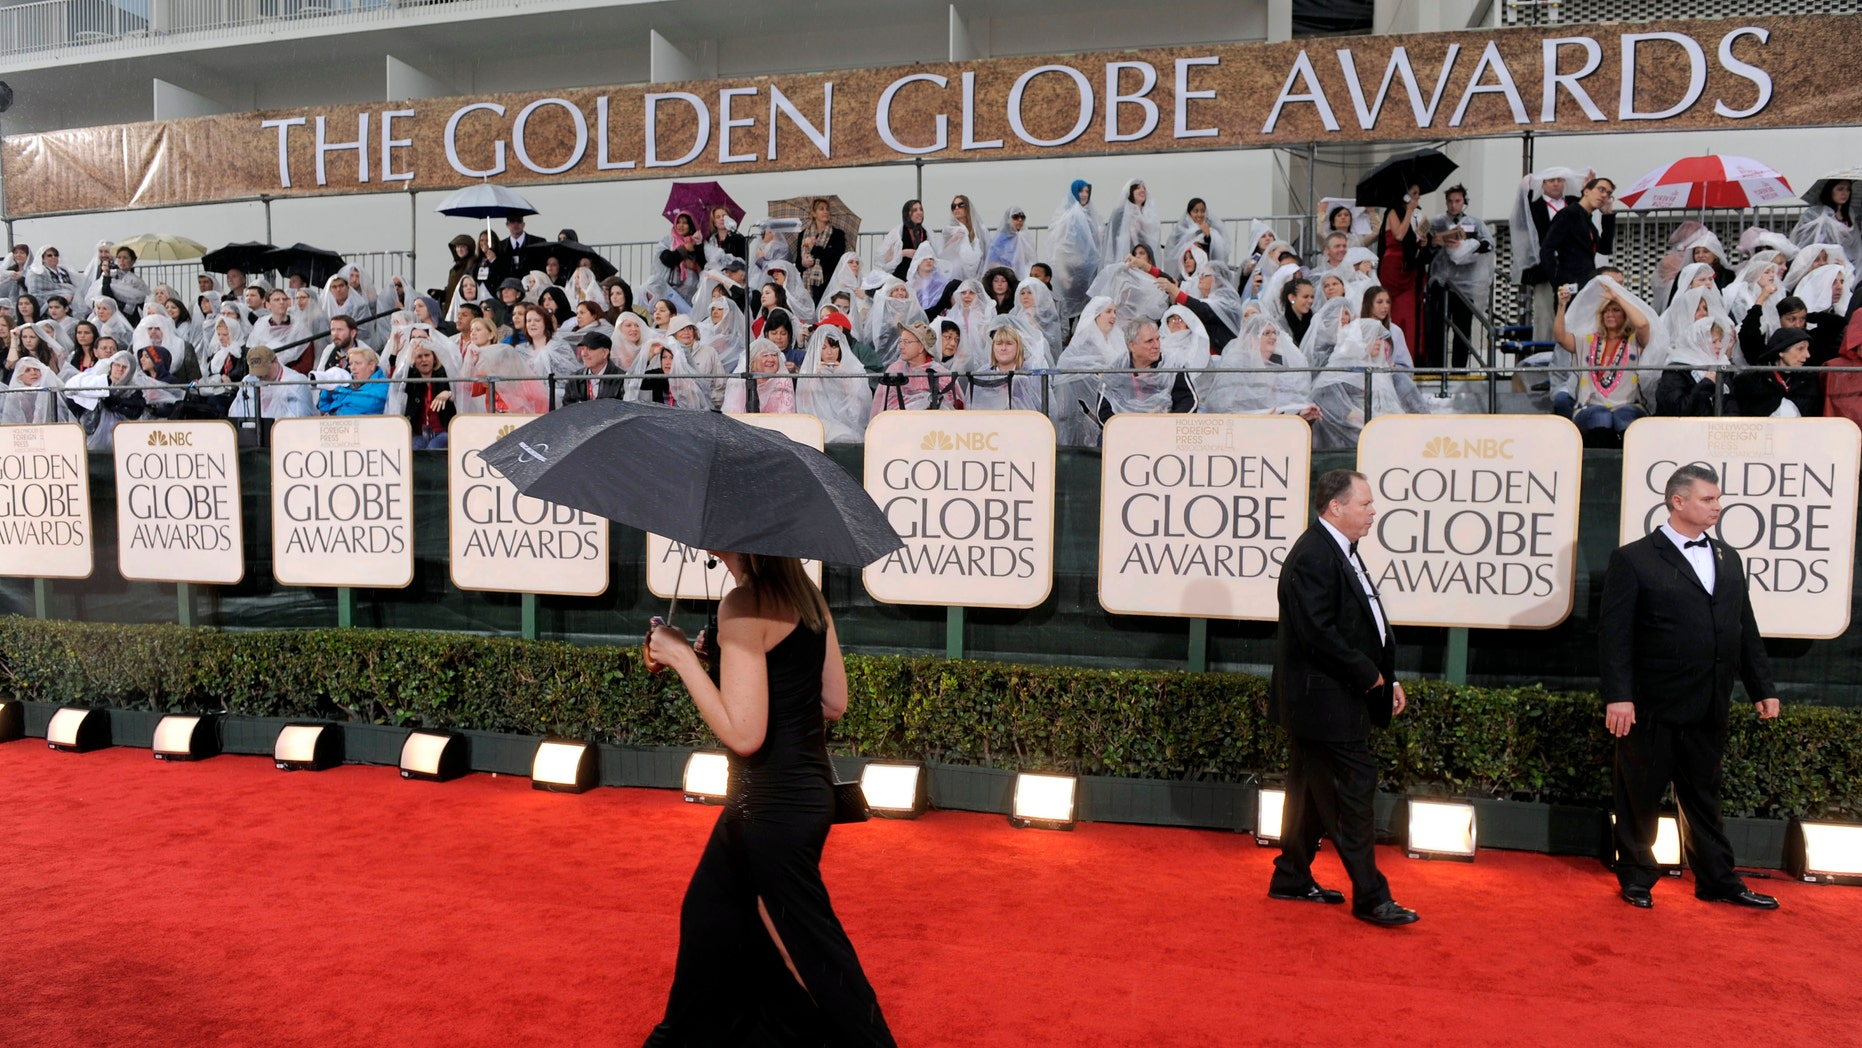 Jan. 17, 2010. A  publicist walks down the red carpet as it rains before the 67th Annual Golden Globe Awards in Beverly Hills, Calif.